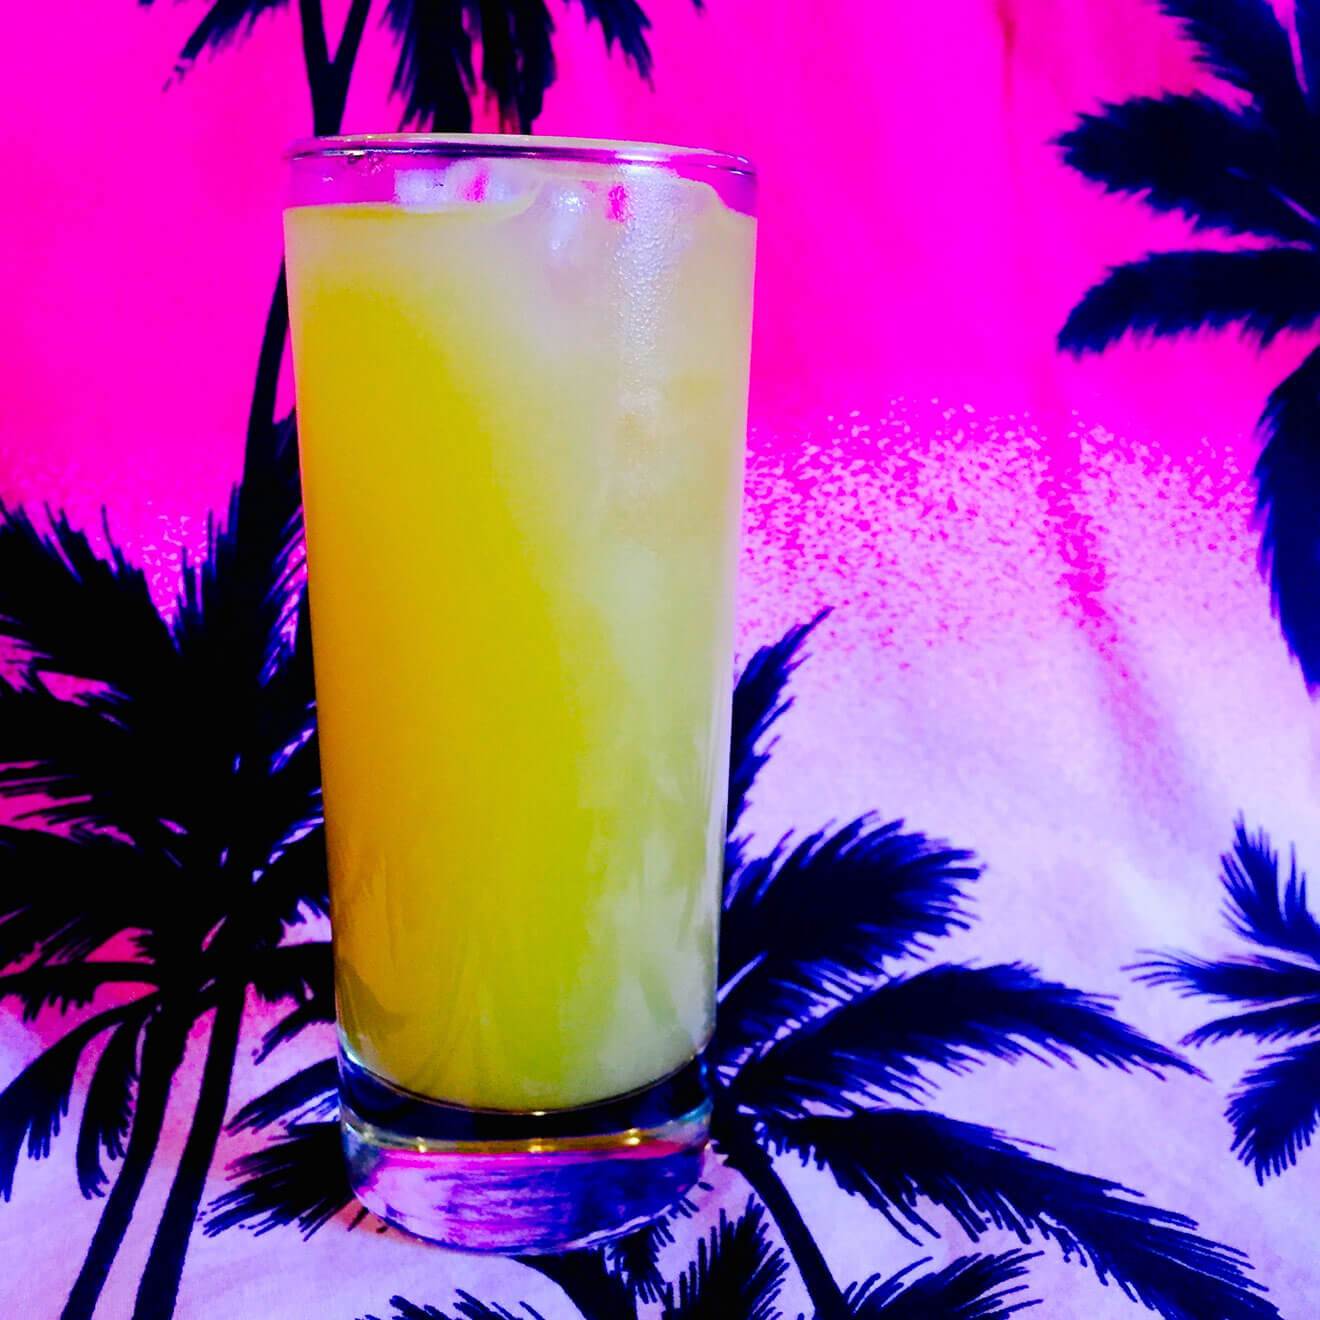 Delhi Cooler cocktail with tropical 80's background